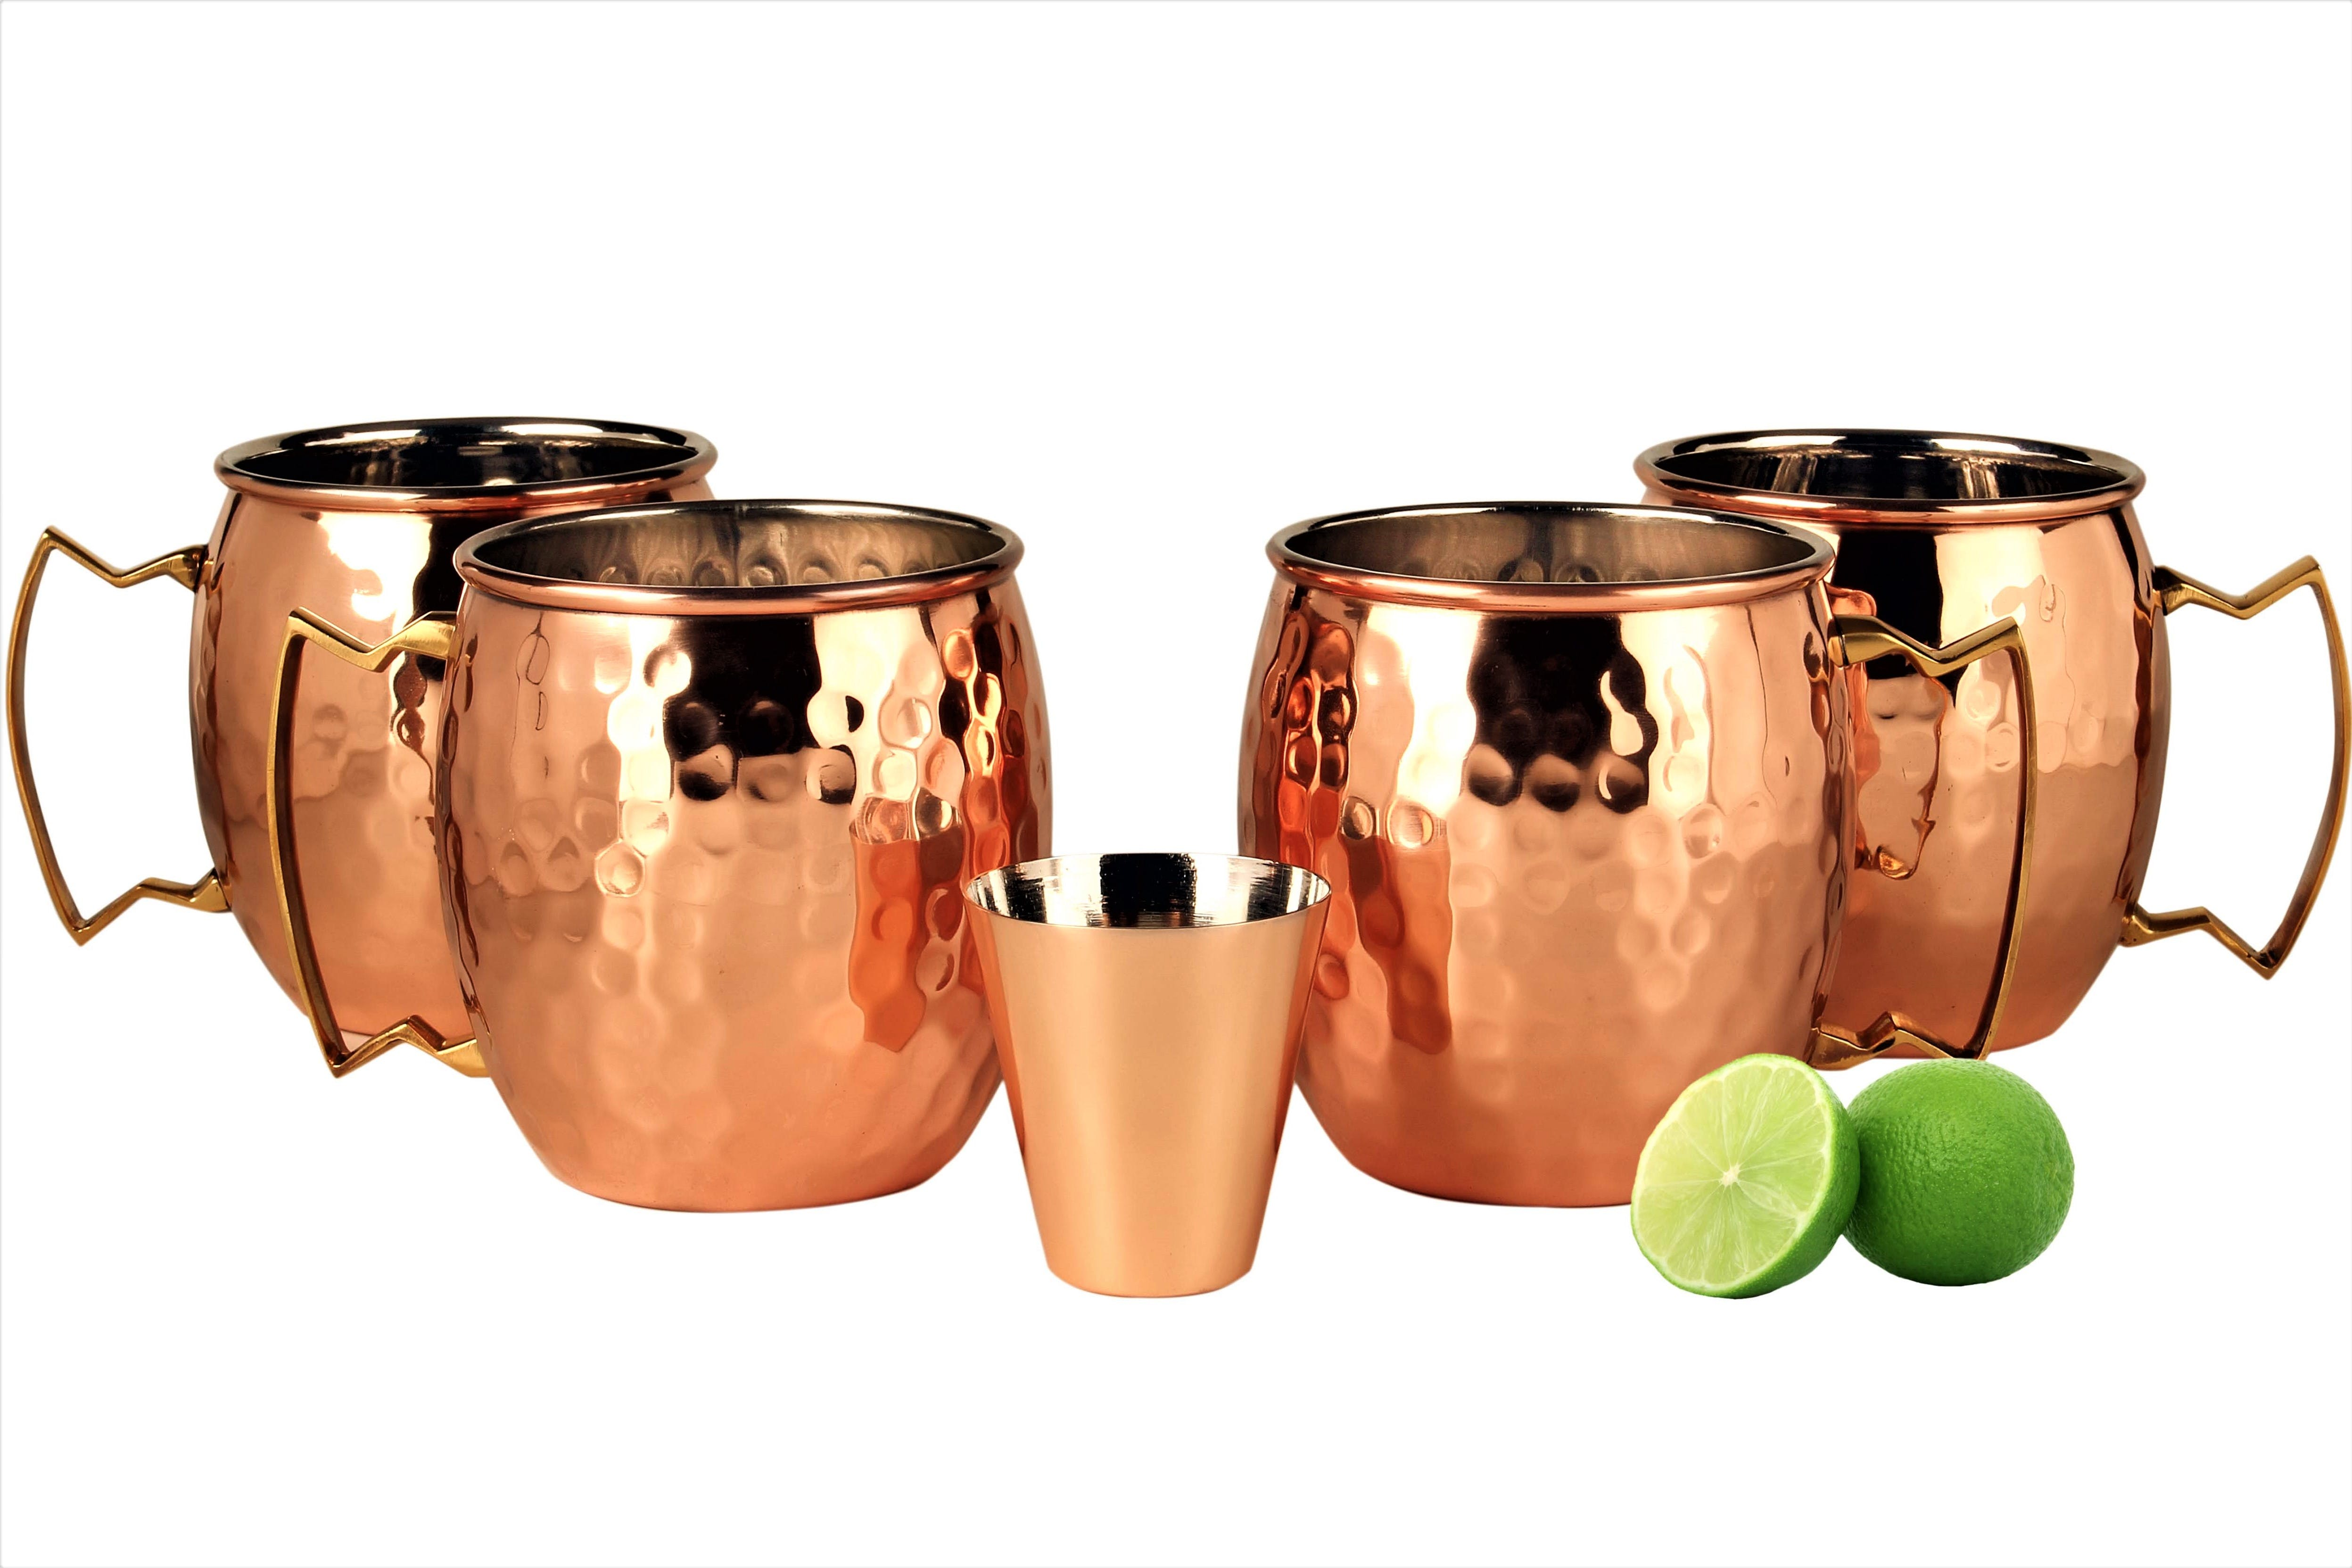 A29 Moscow Mule 100 % Solid Pure Copper Mug / Cup (16-Ounce/Set of 4, Hammered), Nickel Lined, with BONUS Shot Glass and Free Recipe Booklet - sold by a29llc